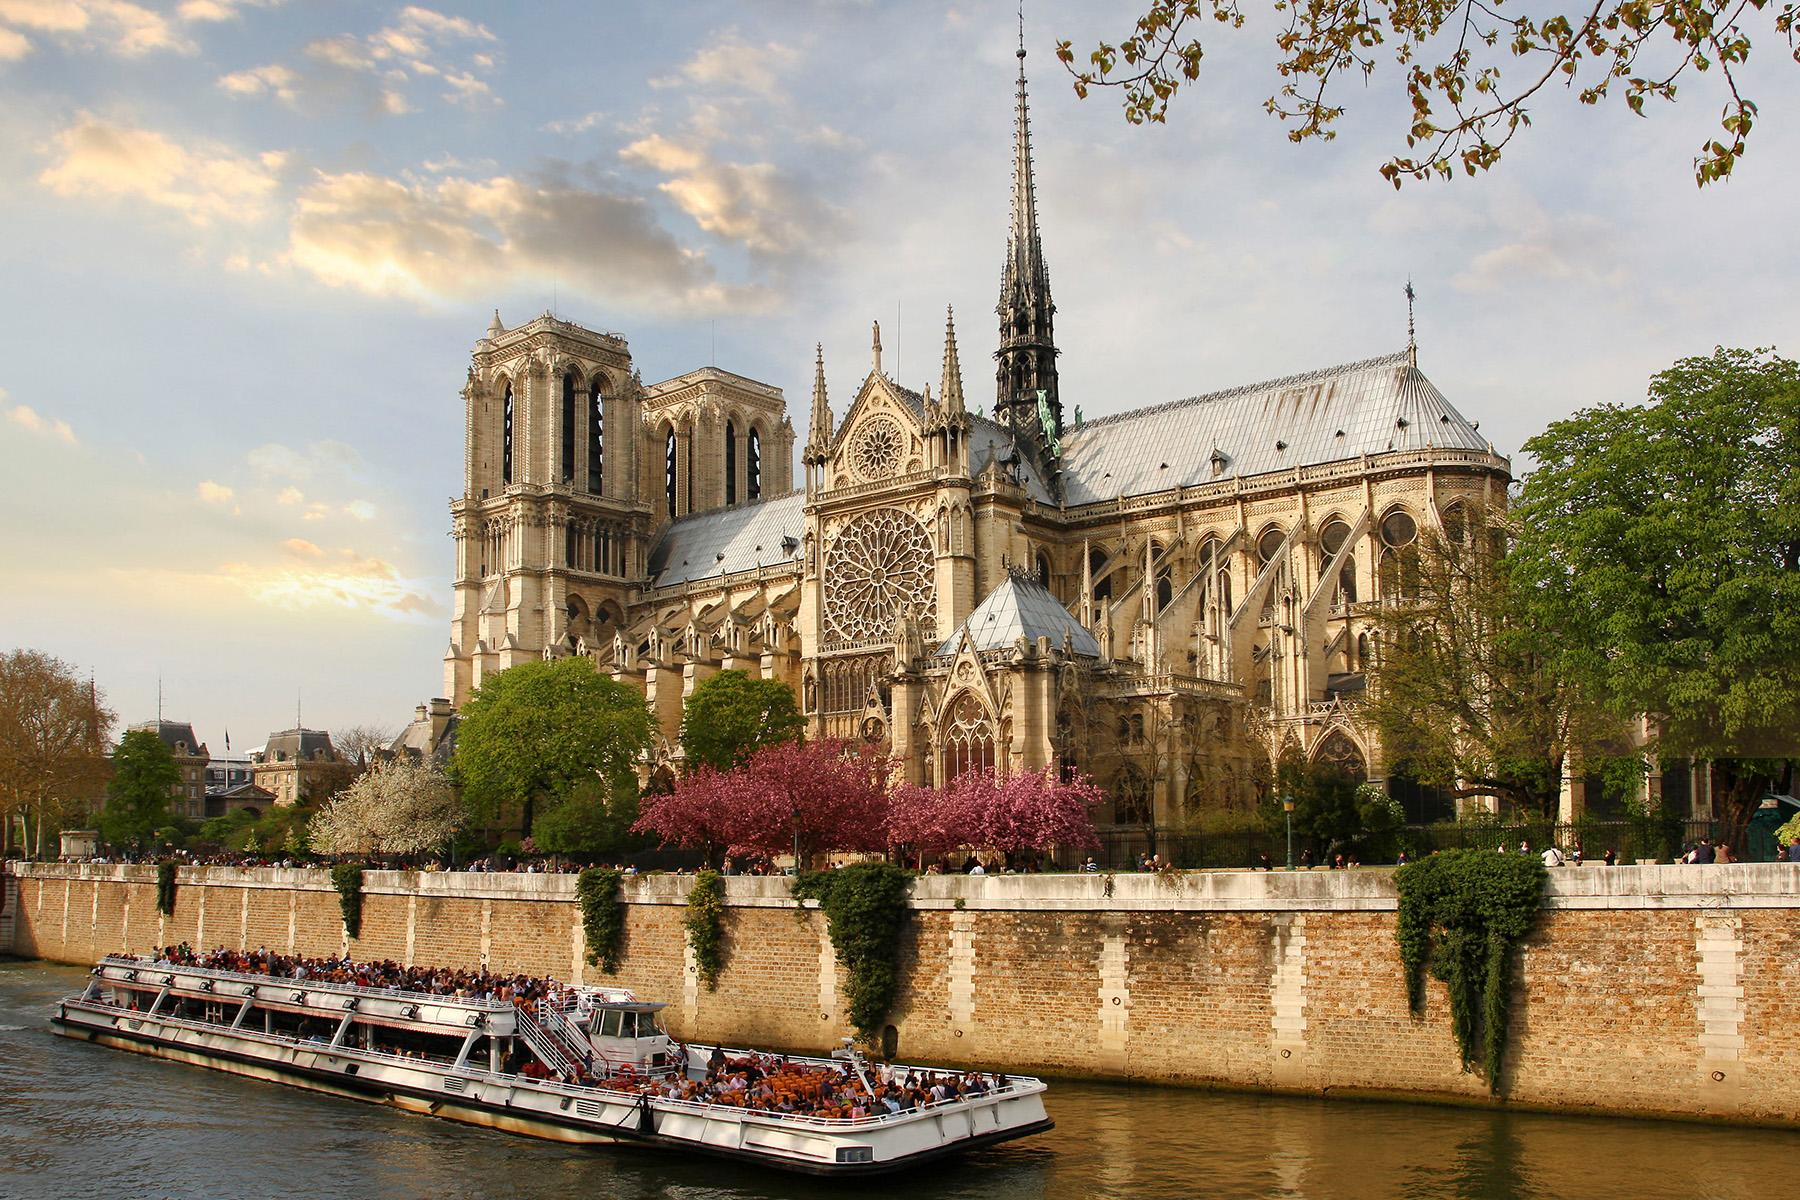 10 Notre Dame the 25 ultimate things to do in paris The 25 Ultimate Things to Do in Paris 10 Notre Dame